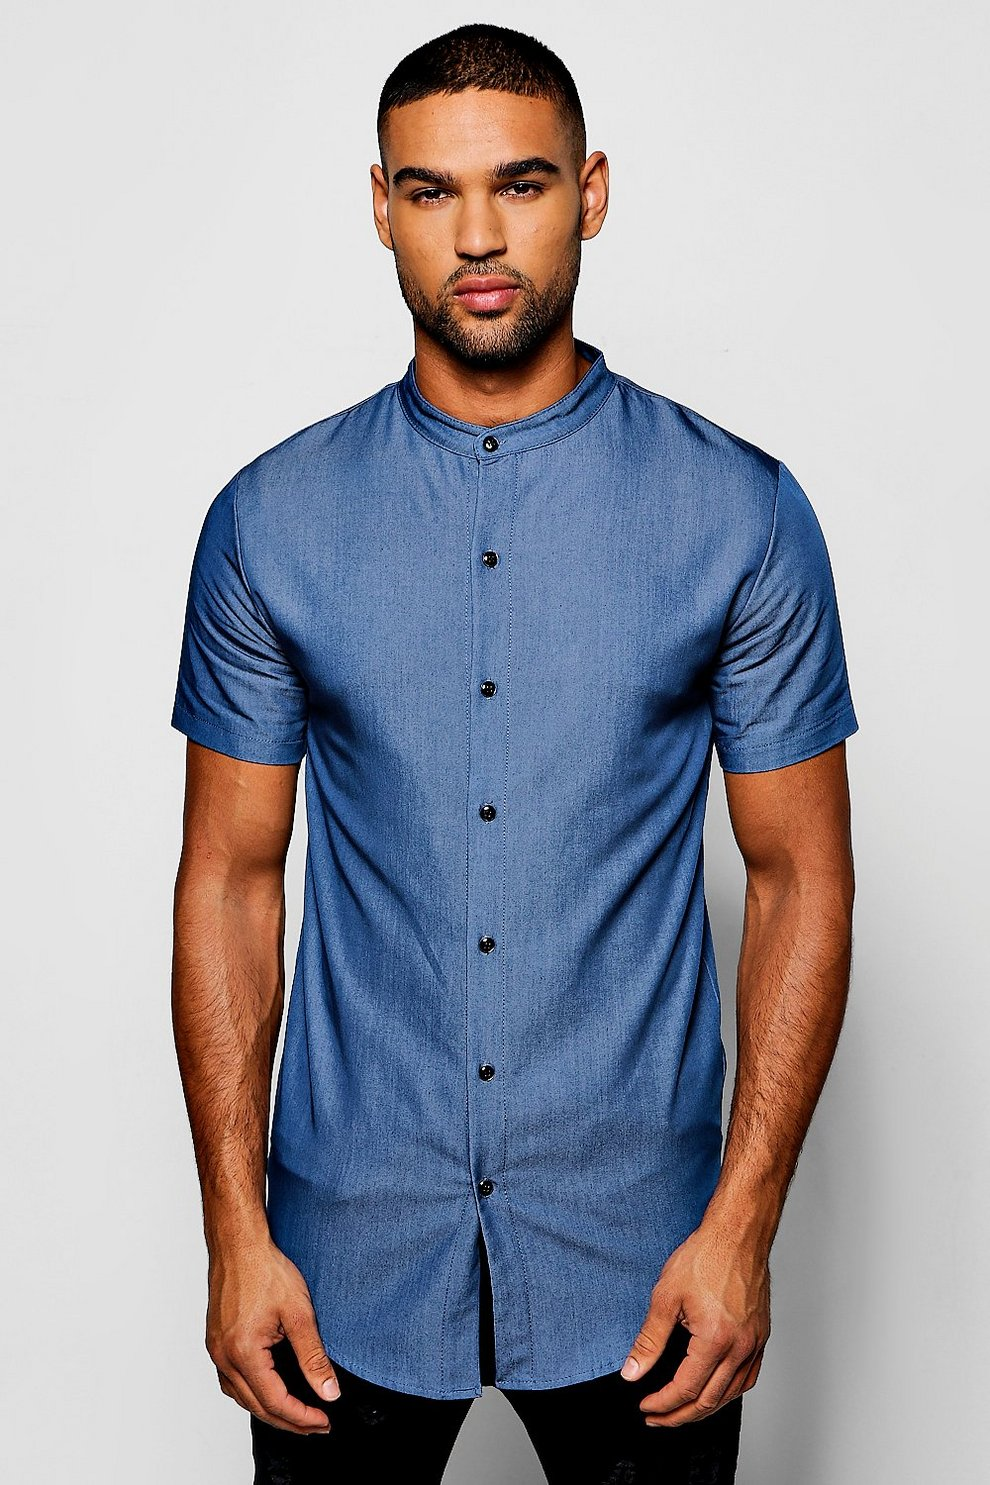 e818806c83b6 Short Sleeve Denim Chambray Shirt with Grandad Collar | Boohoo